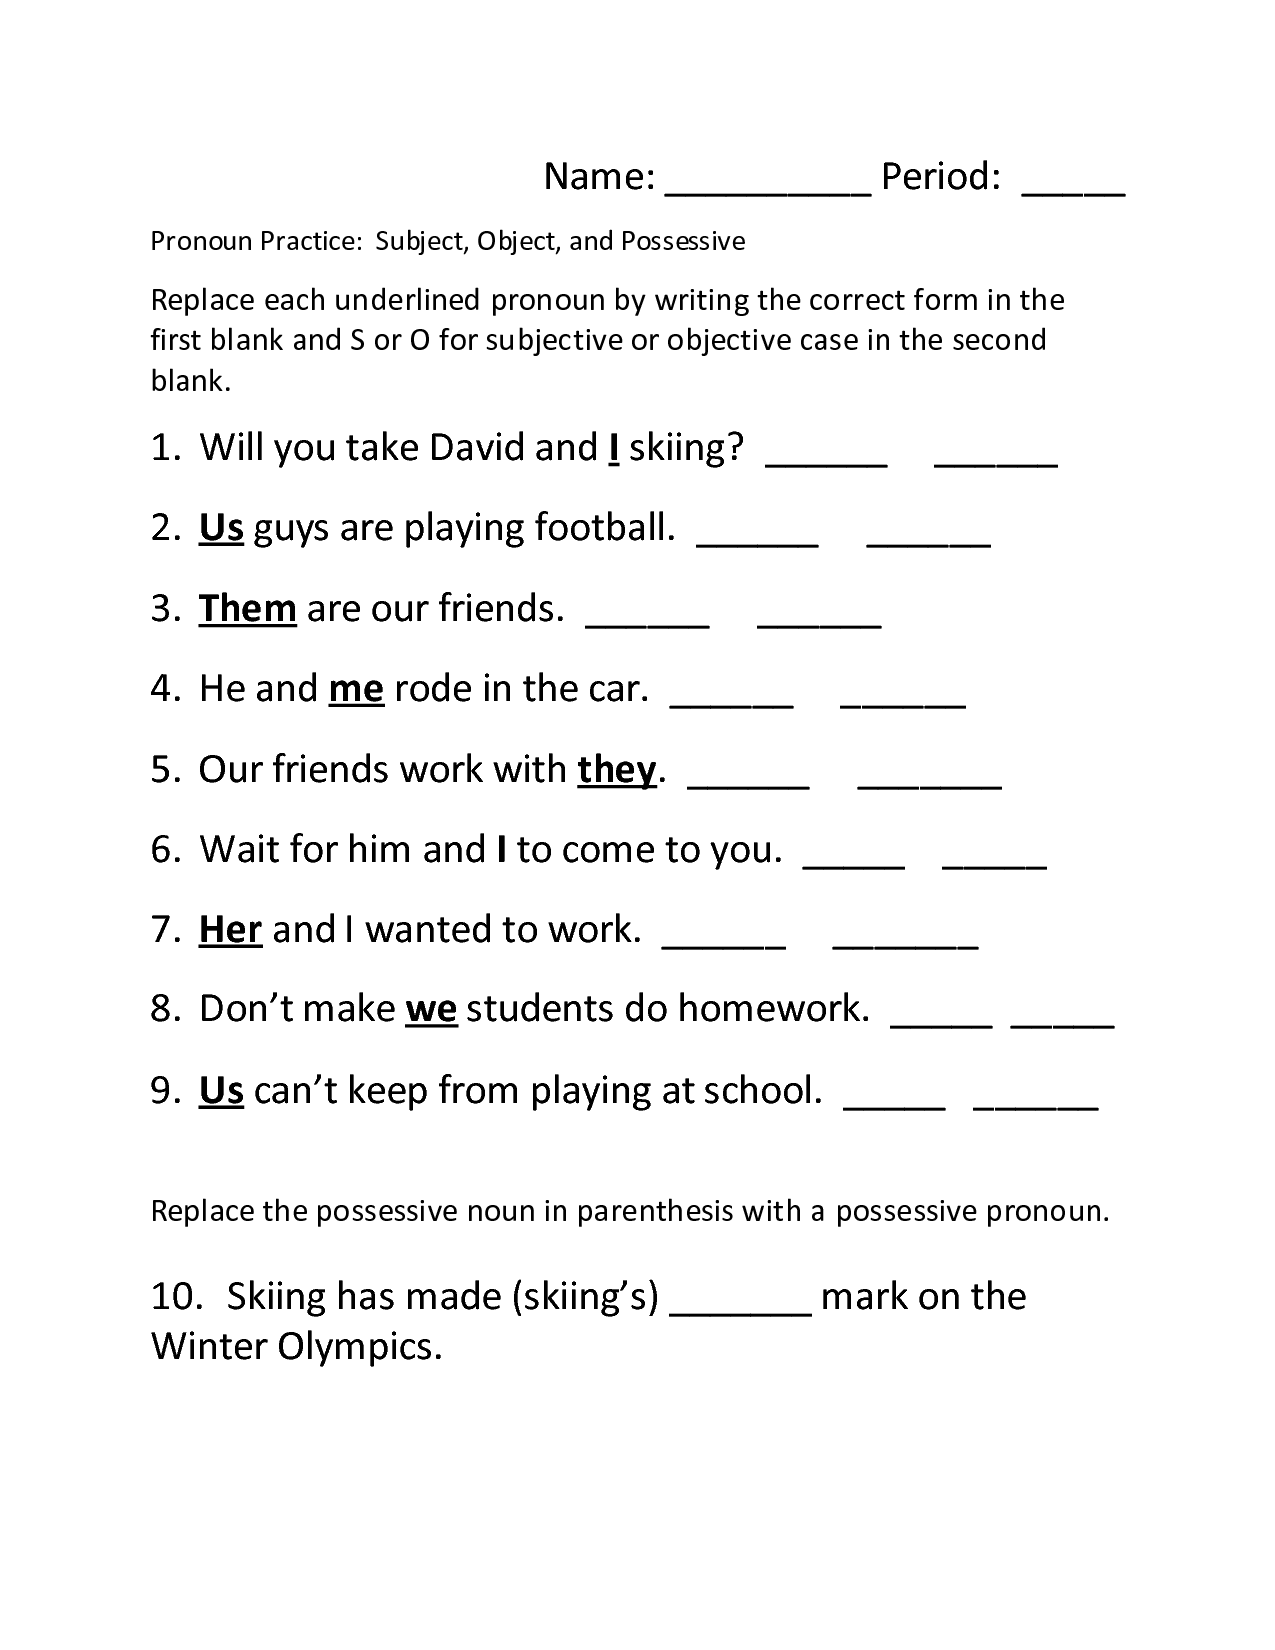 14 Best Images Of Spanish Pronouns Worksheet